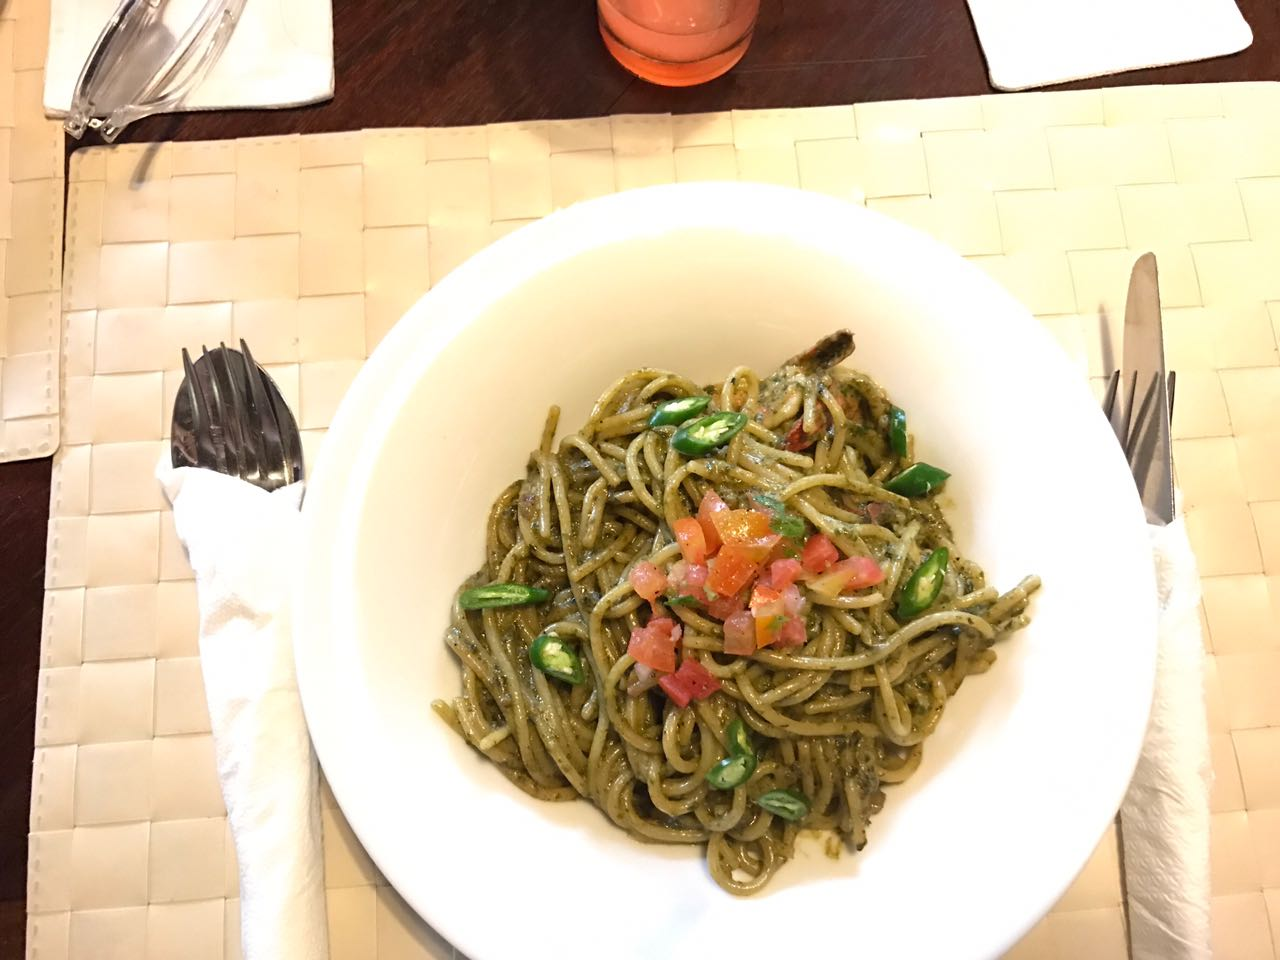 The most delicious pesto spaghetti, my favourite meal of the trip